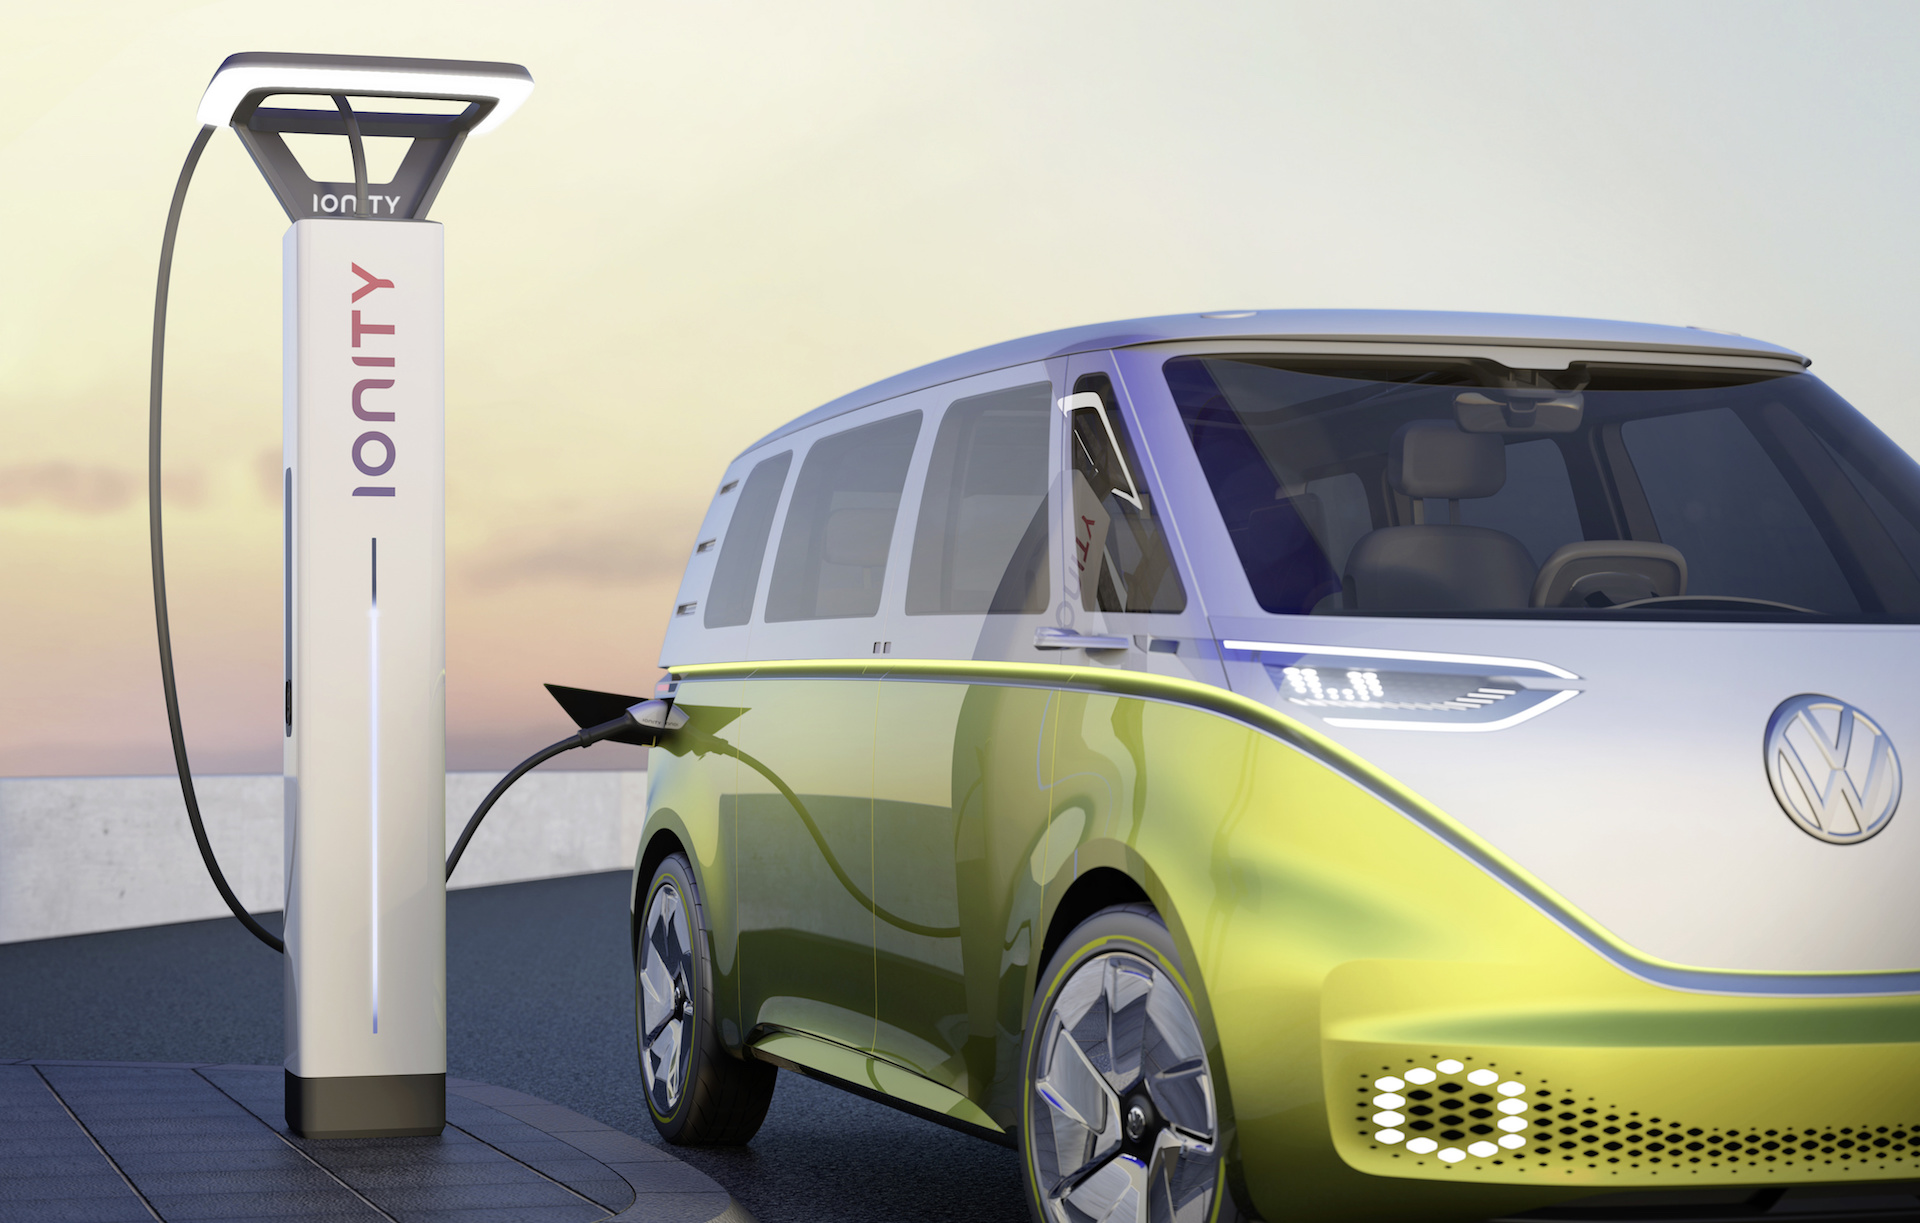 VW Electric Car Pricing, Tesla Software Update, And